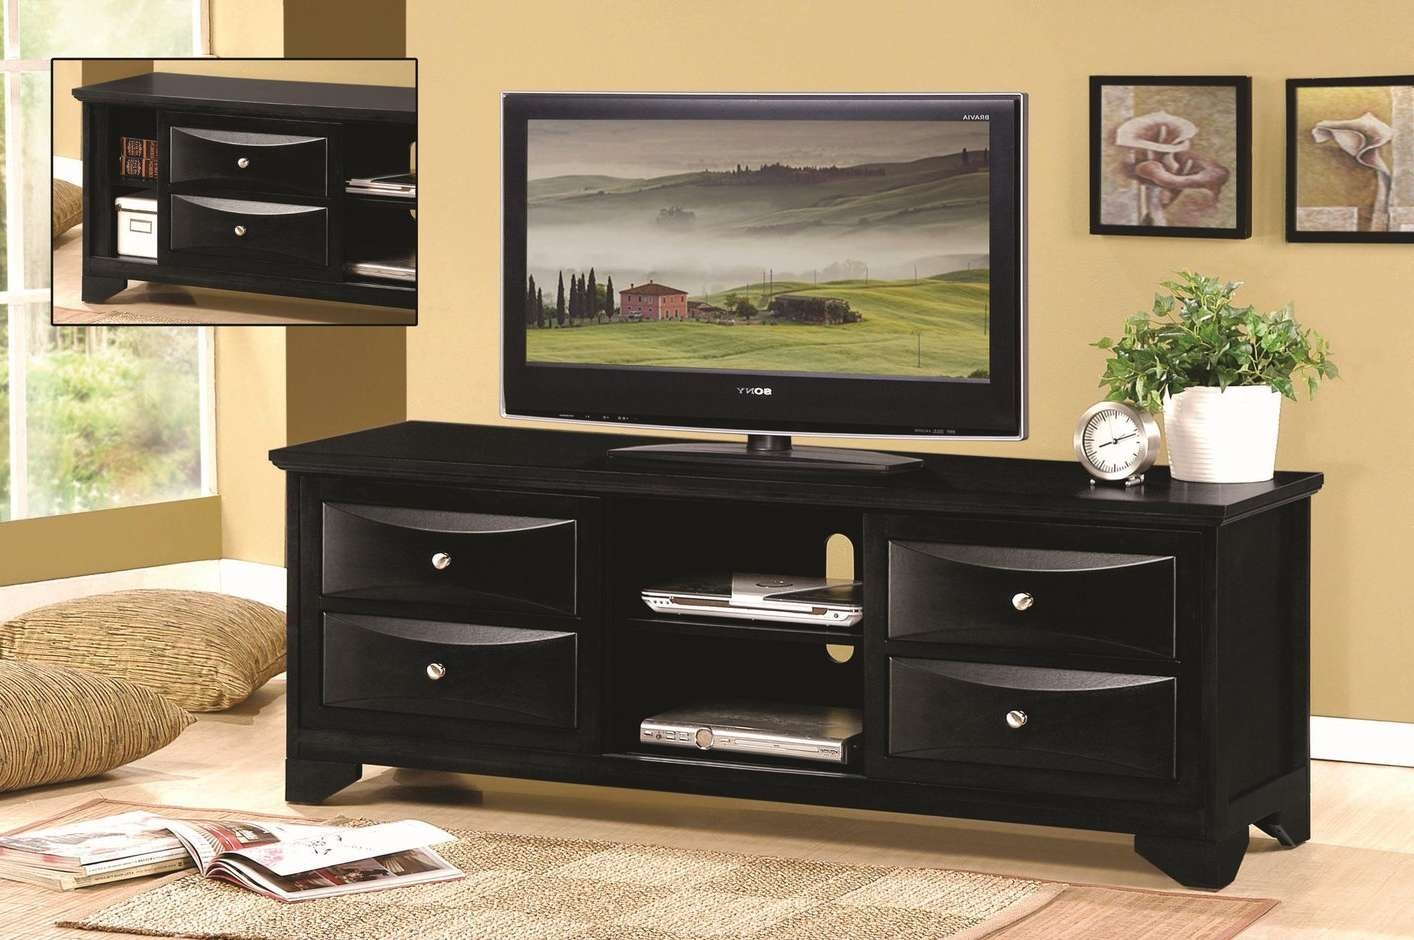 Black Corner Solid Wood Tv Stand Tags : 40 Striking Black Wood Tv For Solid Wood Black Tv Stands (View 2 of 15)